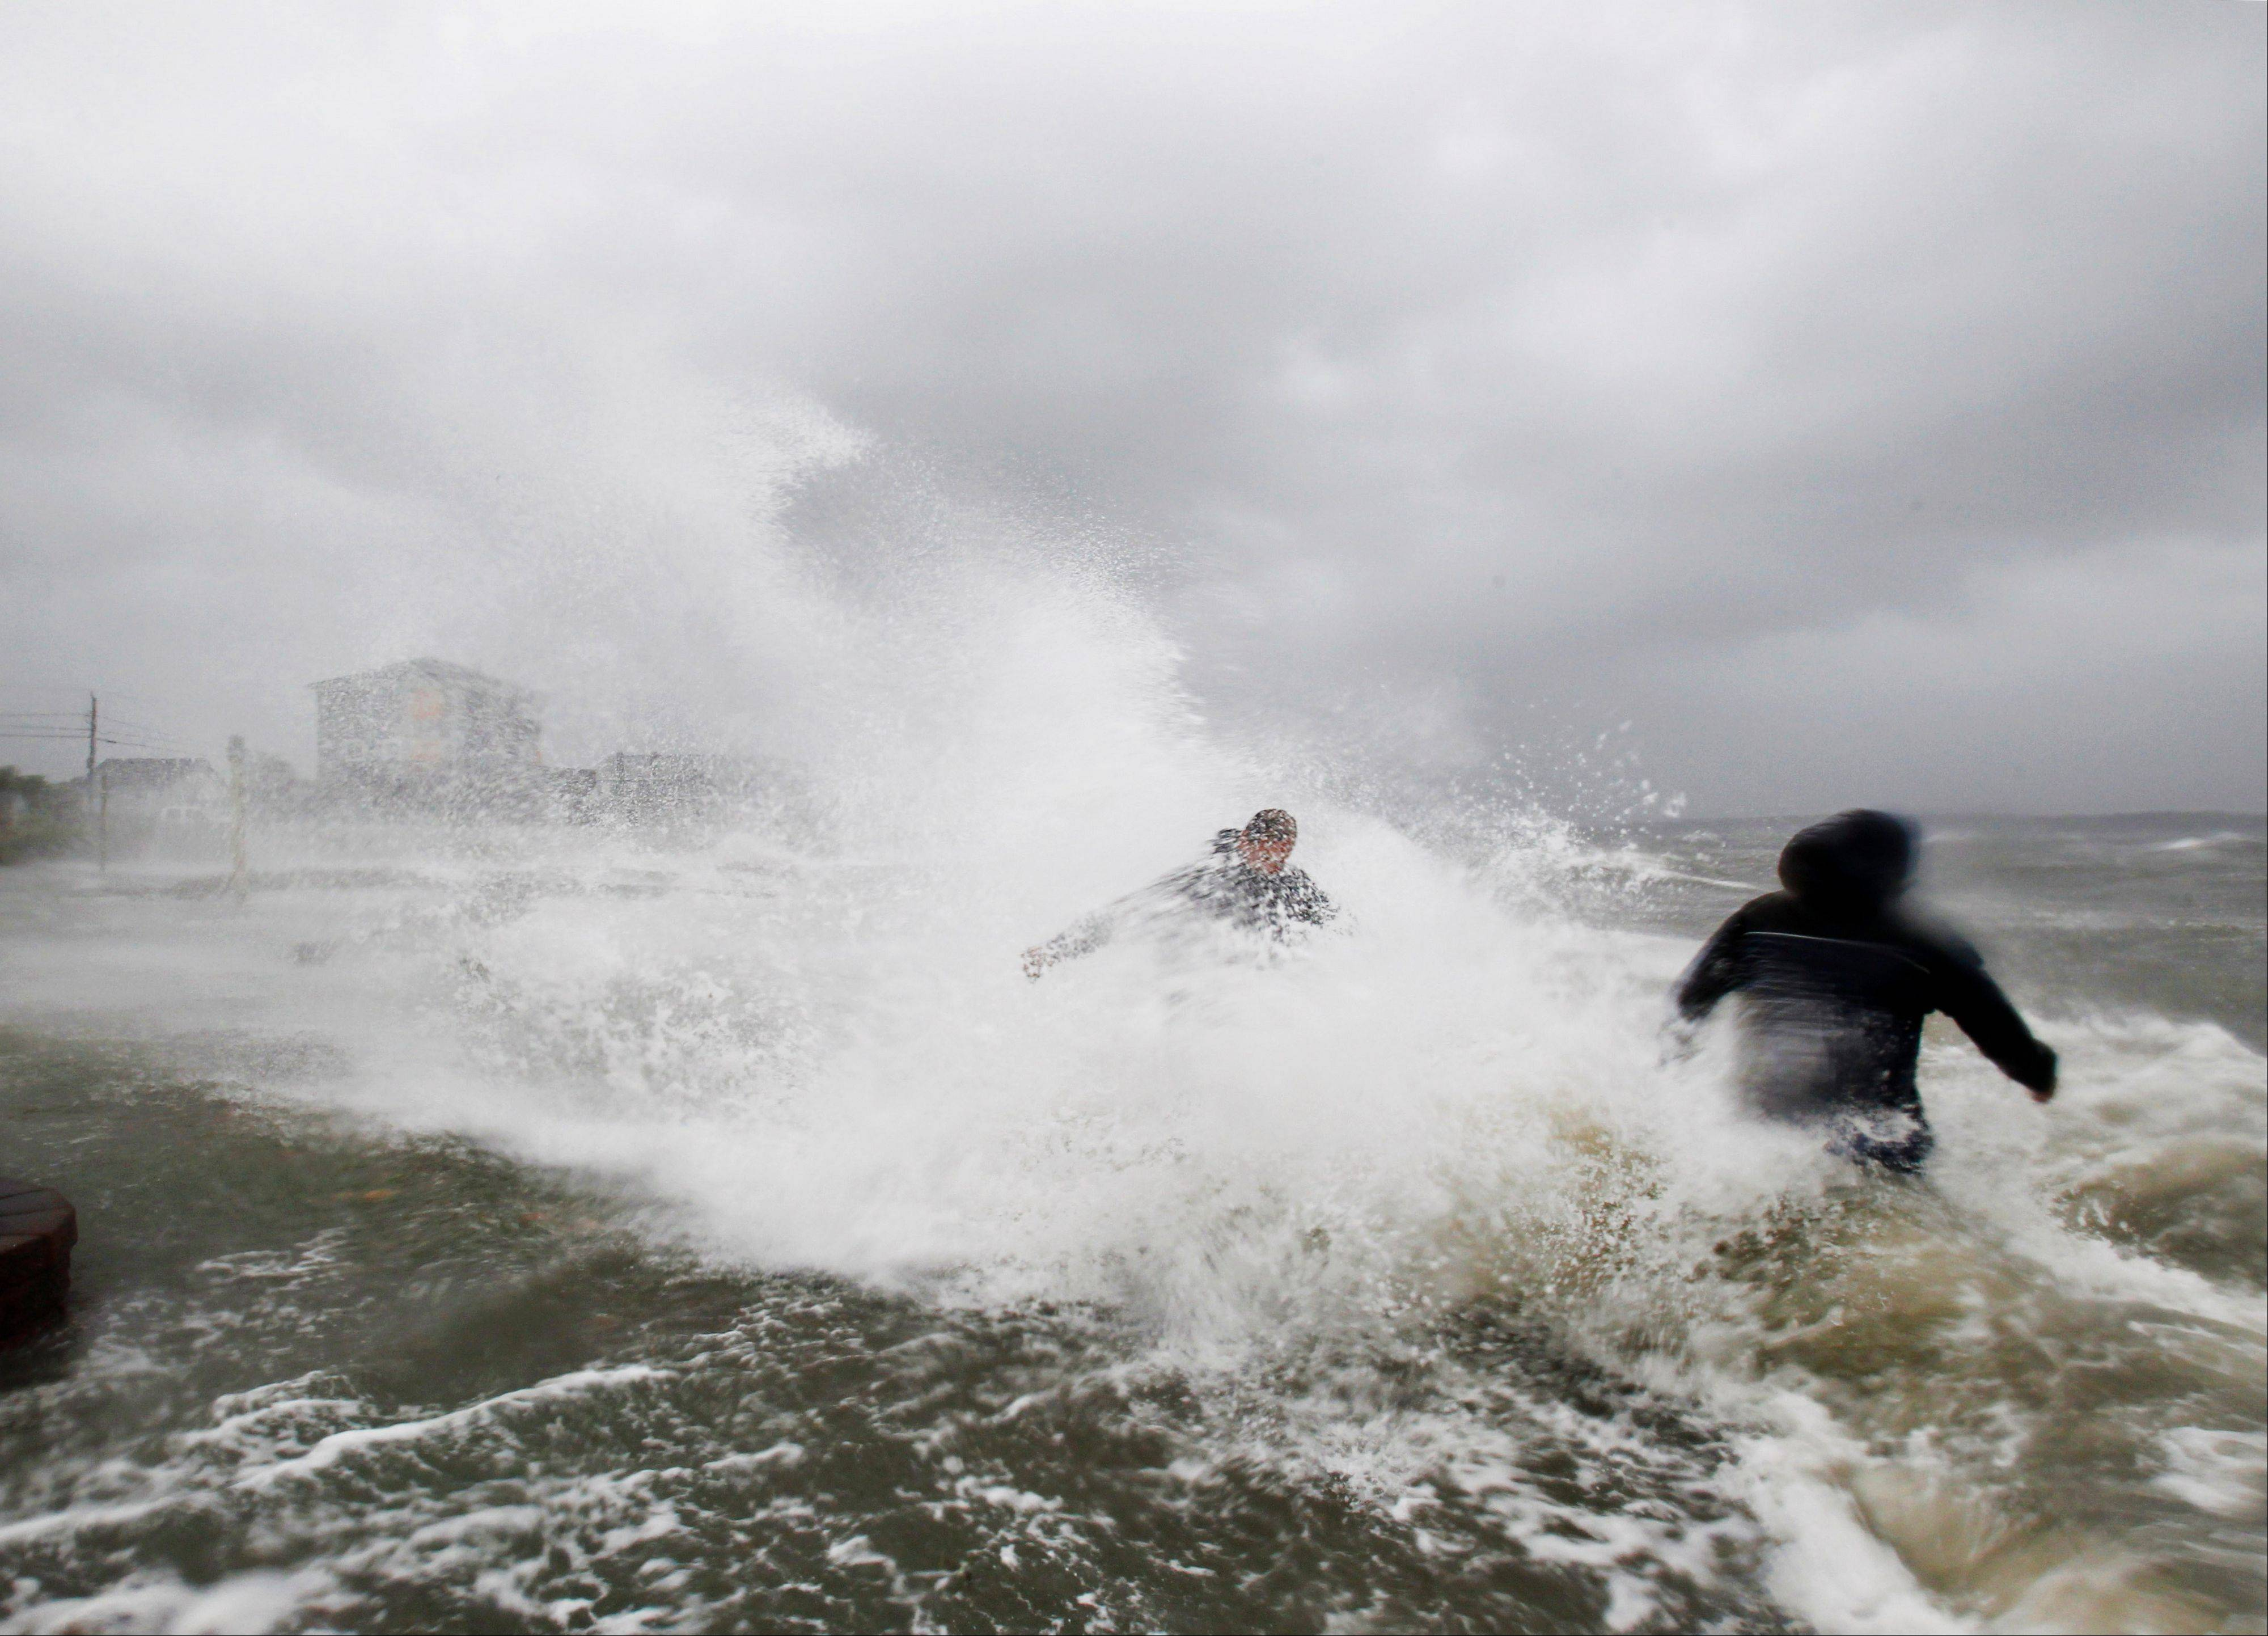 Ken Thompson, right, and Ray Morrison make their way toward their house along a seawall as winds from Tropical Storm Irene batter the shore in Fairhaven, Mass., Sunday, Aug. 28, 2011. Irene weakened to winds of 65 mph, below the 74 mph dividing line between a hurricane and tropical storm. The system was still massive and powerful, forming a figure six that covered the Northeast. It was moving twice as fast as the day before.